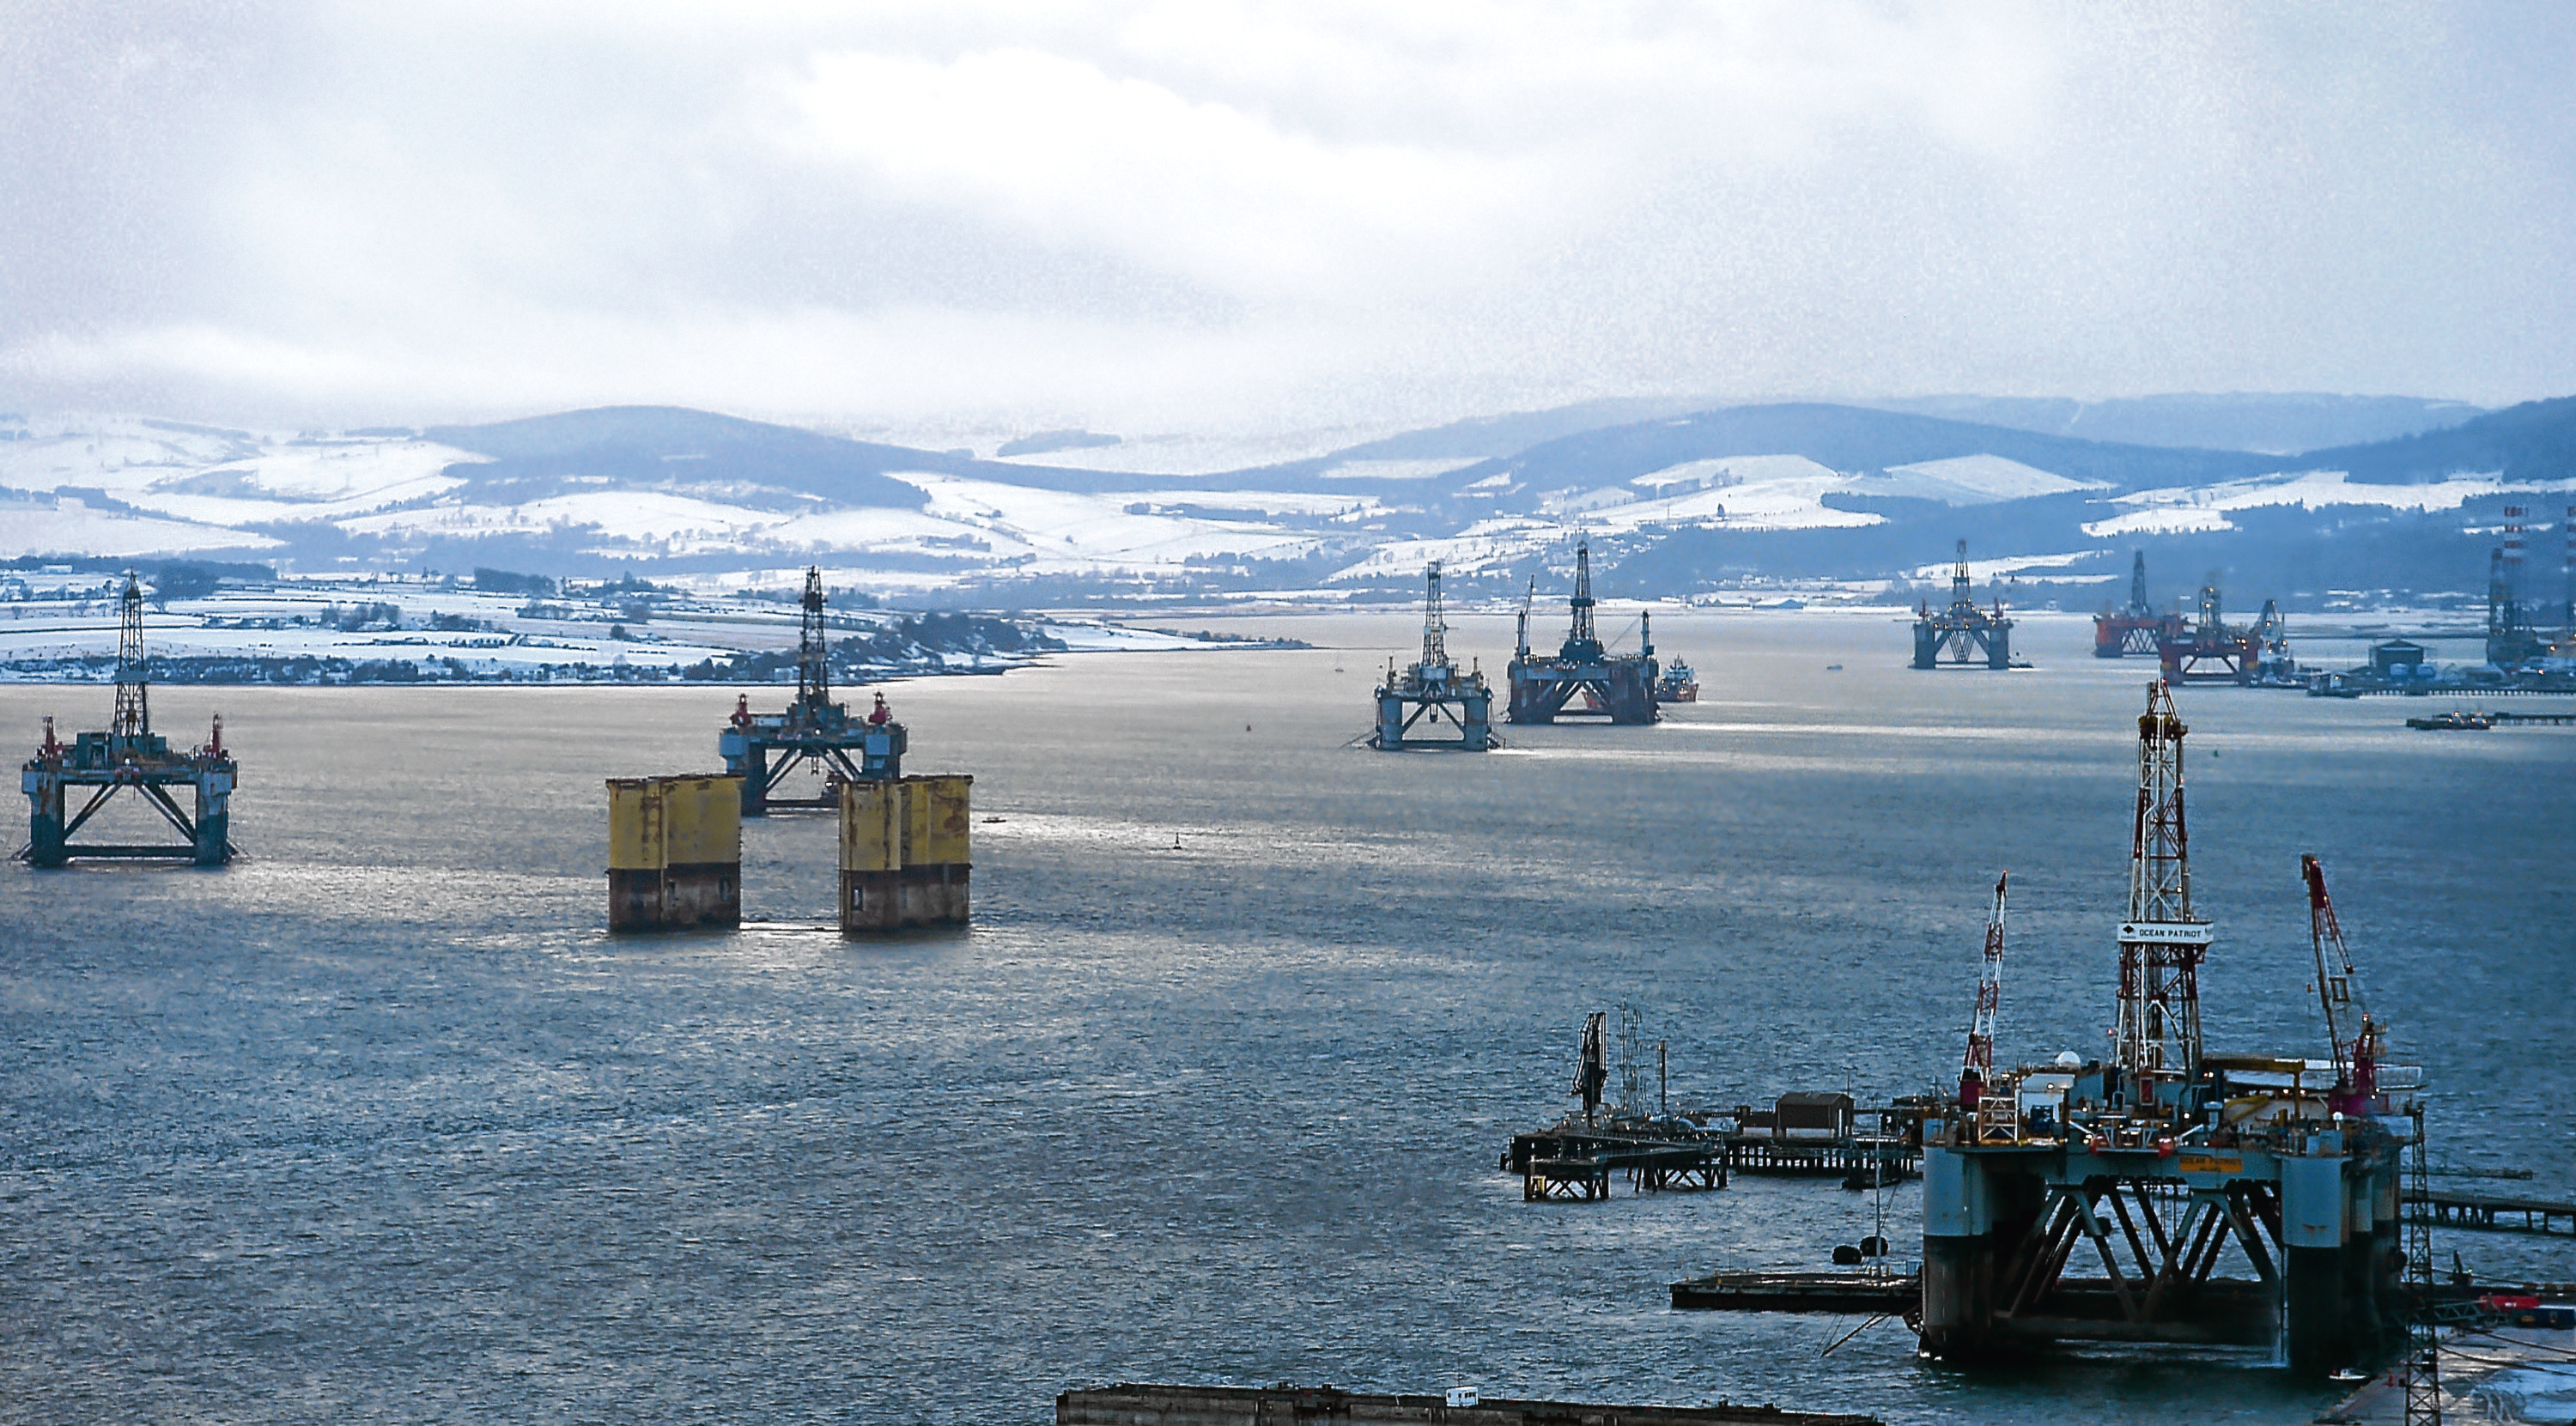 The oil rig twins, Ocean Princess (left) and Ocean Nomad (second left) in the Cromarty Firth.